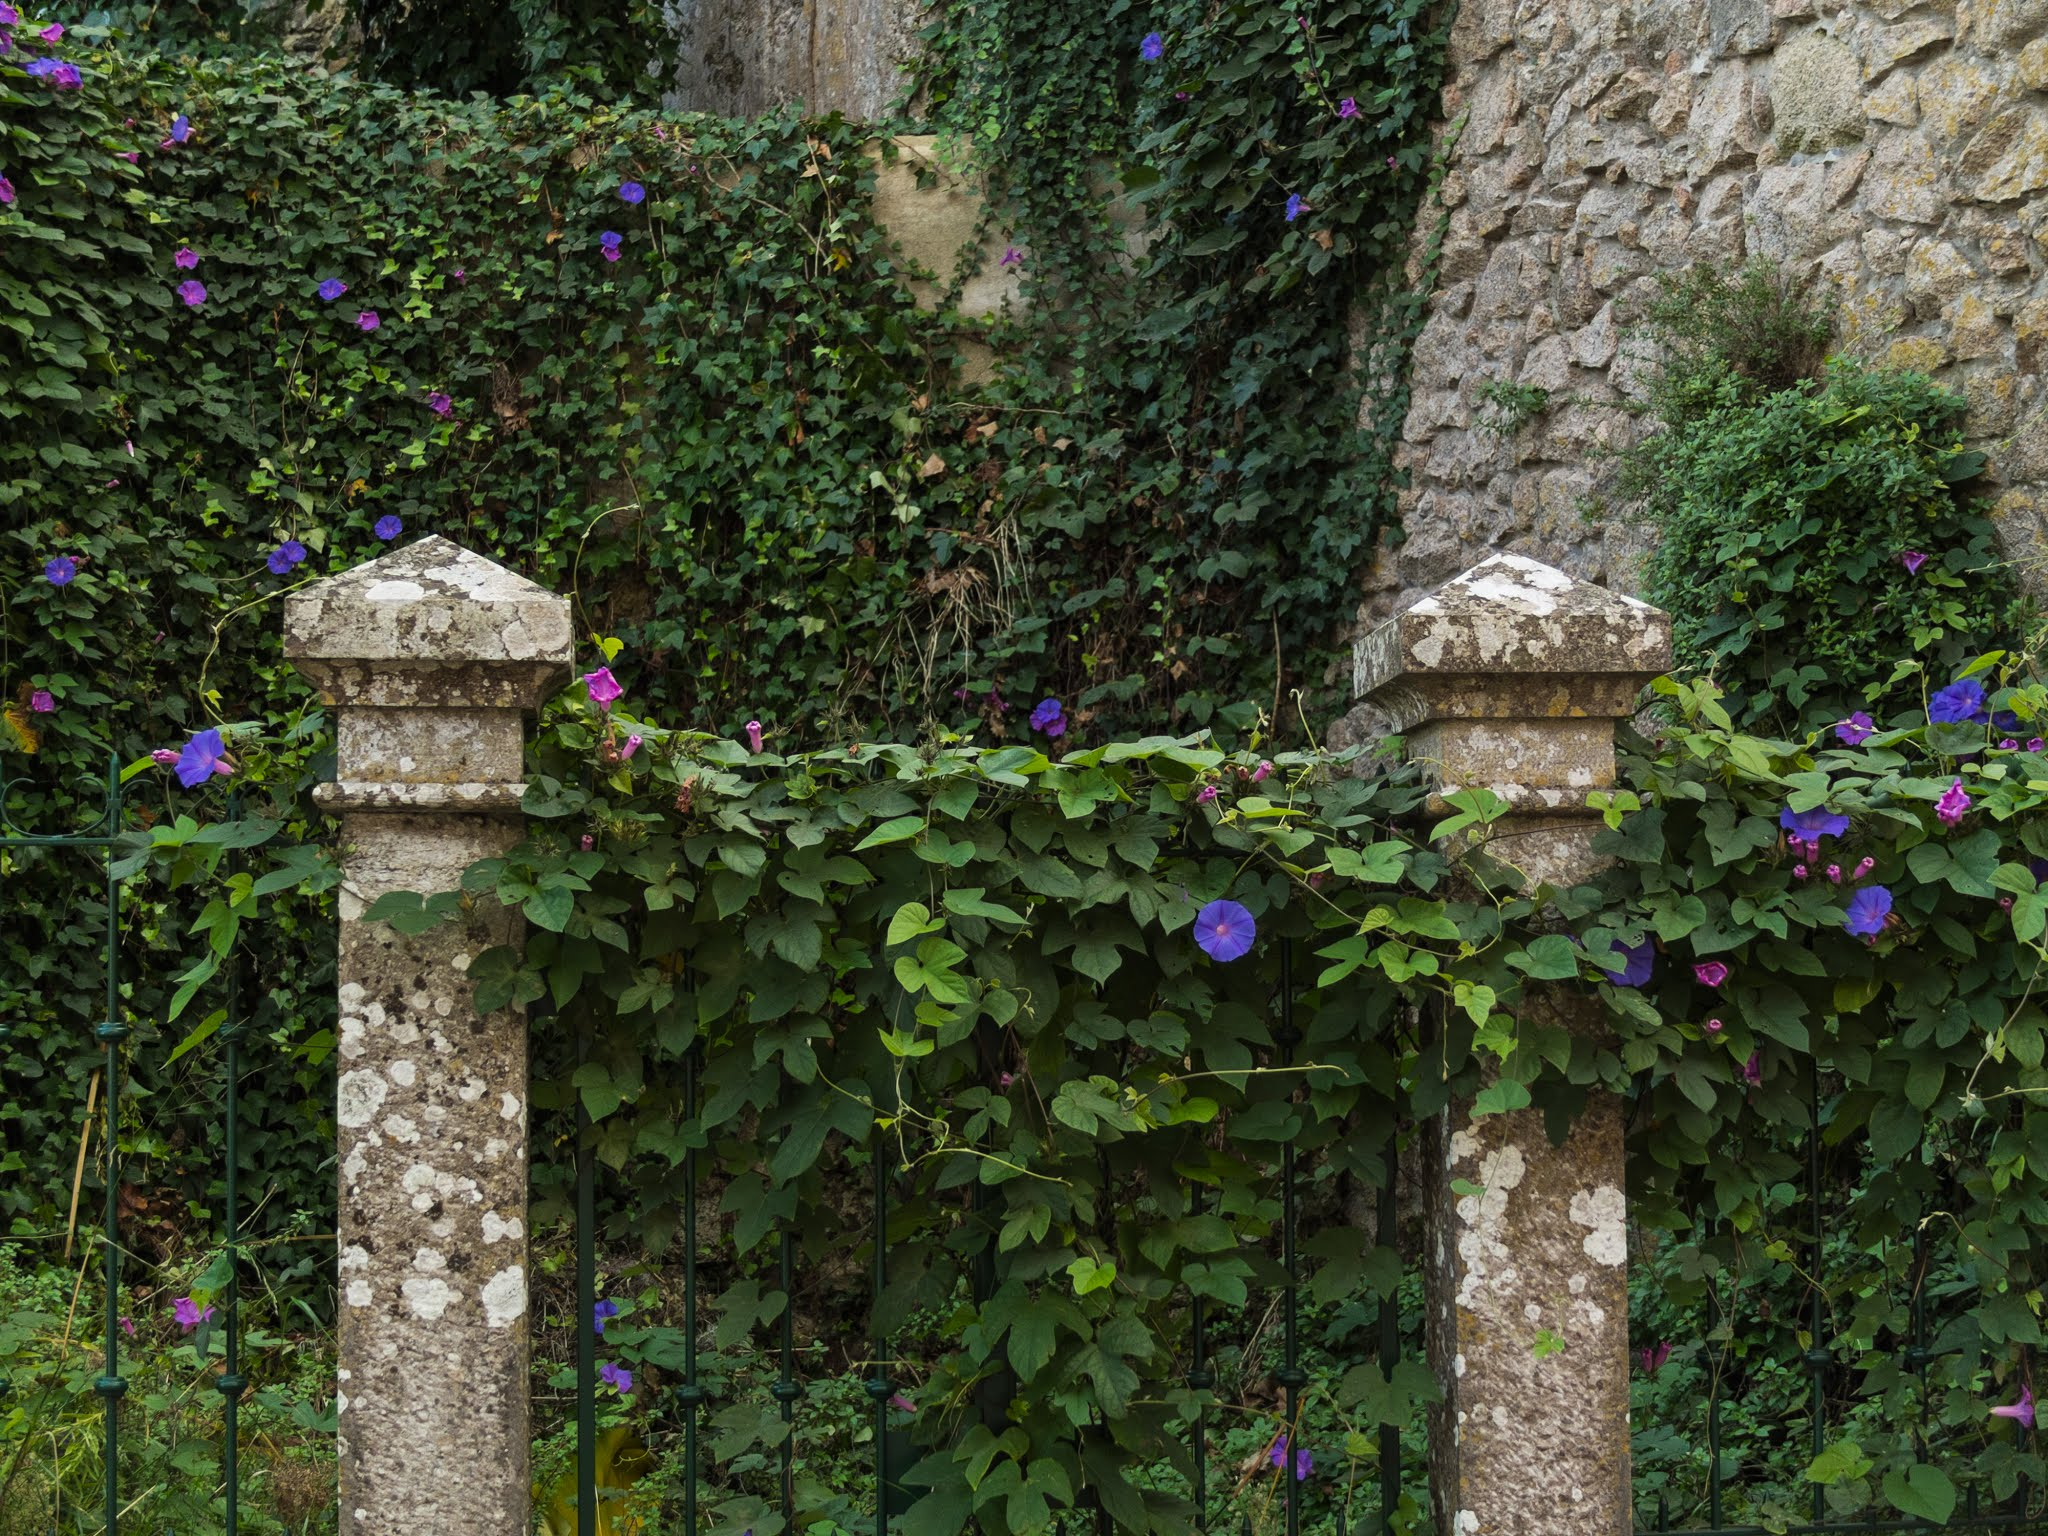 Purple Ivy flowers covering a gate and walls in Sintra, Portugal.